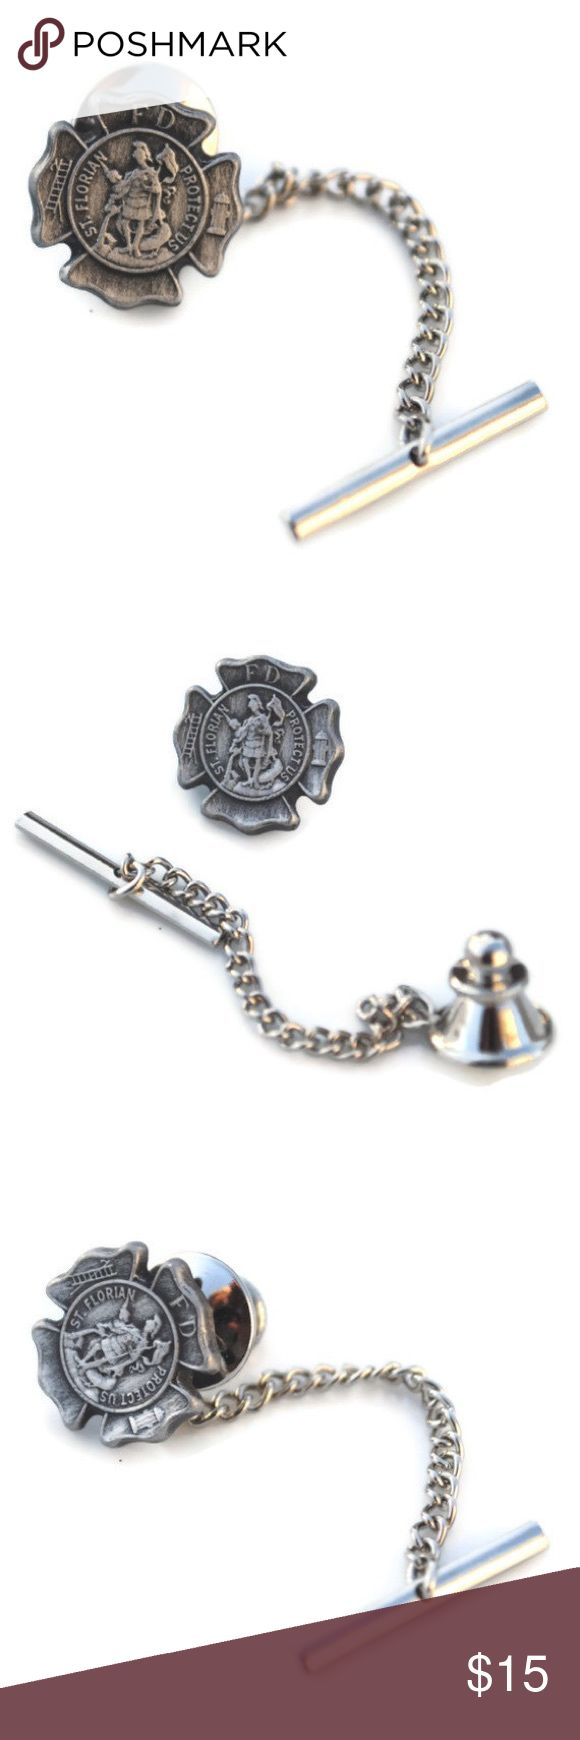 "Firefighter Tie Tack Patron Saint Florian Pewter Saint Florian the patron saint of firefighters tie tack.  Listing is for one with a pewter shield and silver tone back. The shield is 5/8"" x 5/8'  Most of our items are made with vintage pieces, findings, and are limited quantity. Because we do reclaim vintage items the pieces may have beautiful imperfections or patina that only adds to the charm Joann Ray Accessories"